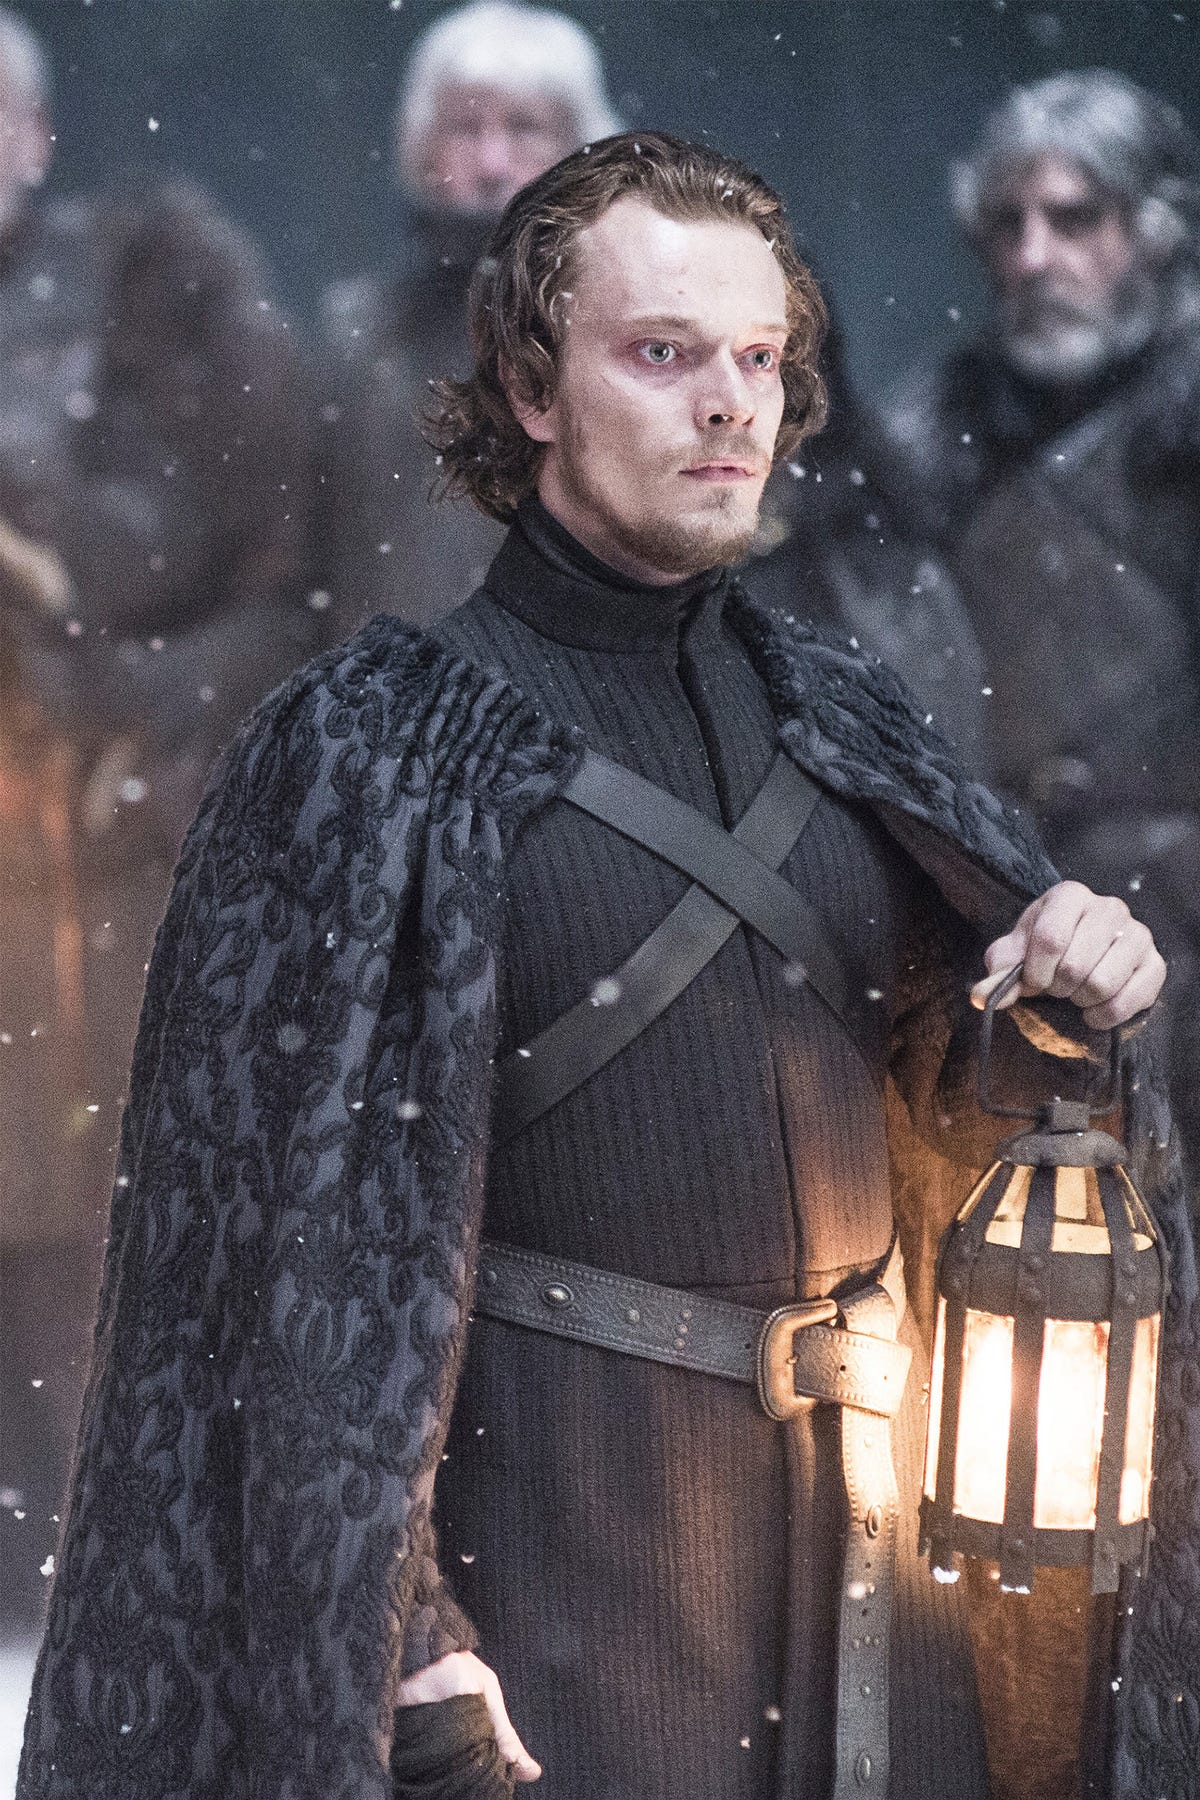 Game of Thrones Season 8 Official Characters Guide